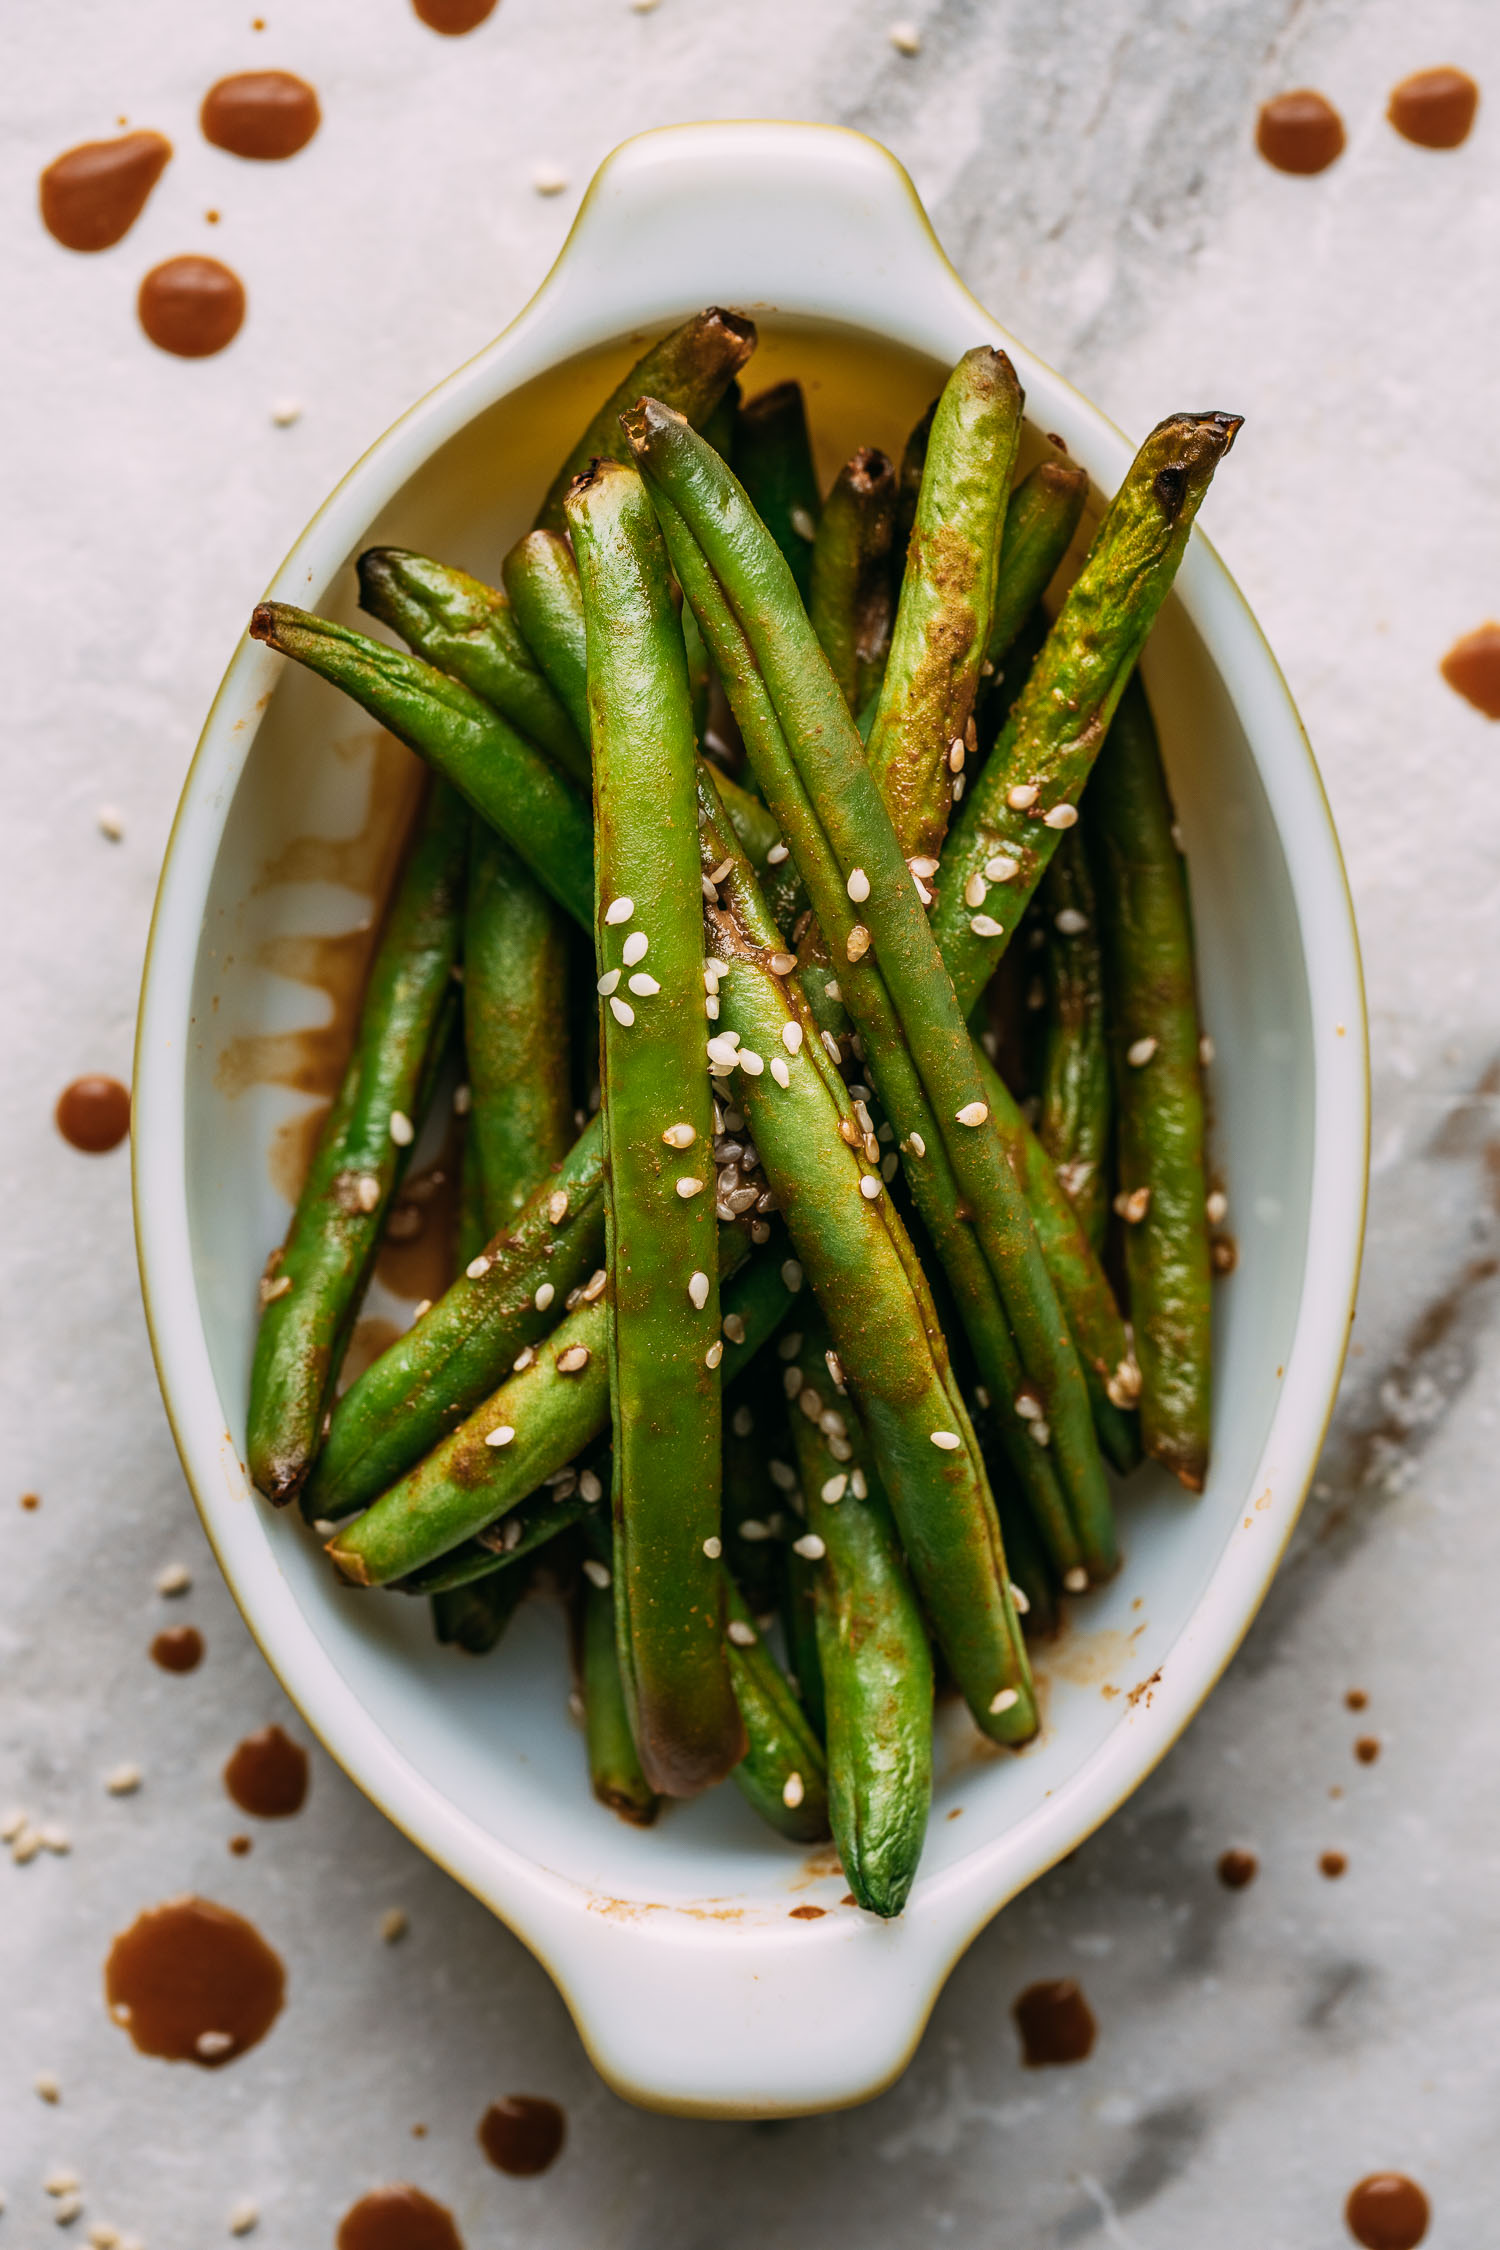 an oval shaped vintage baking dish with pan cooked green beans drizzled in a tahini sauce and sesame seeds with drips of sauces around the dish of beans